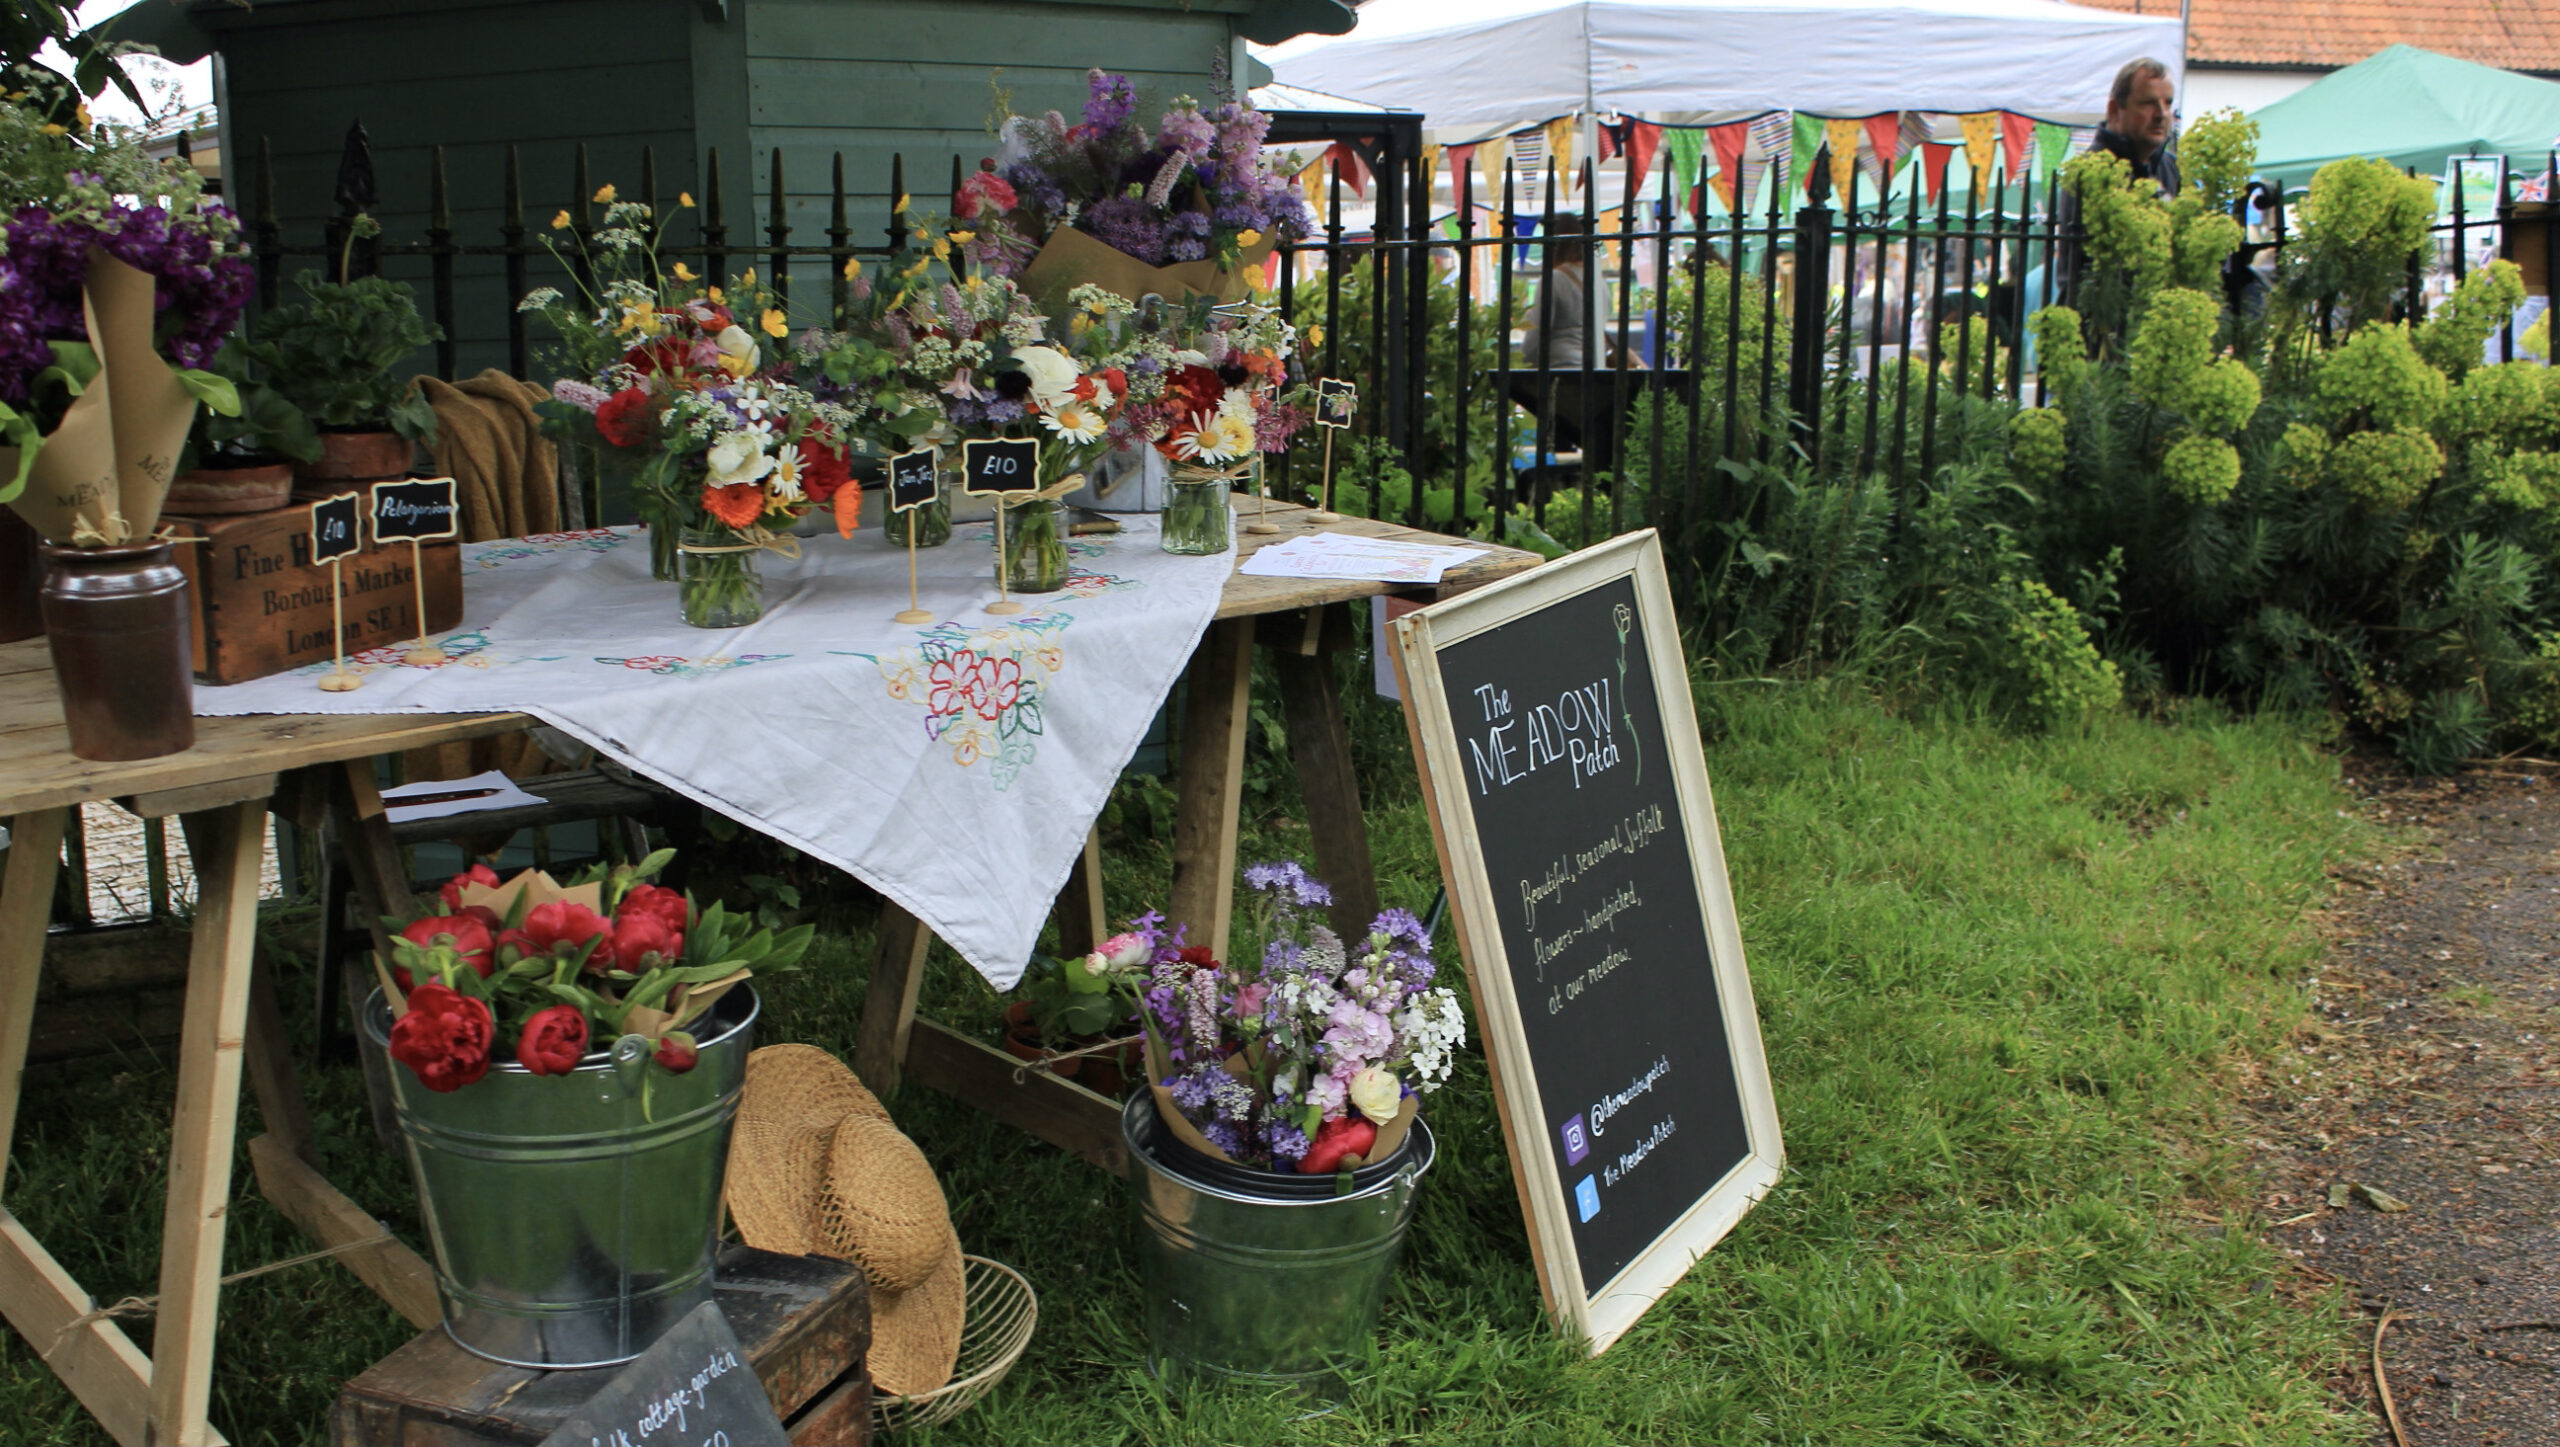 Locally grown flowers being sold at market by The Meadow Patch